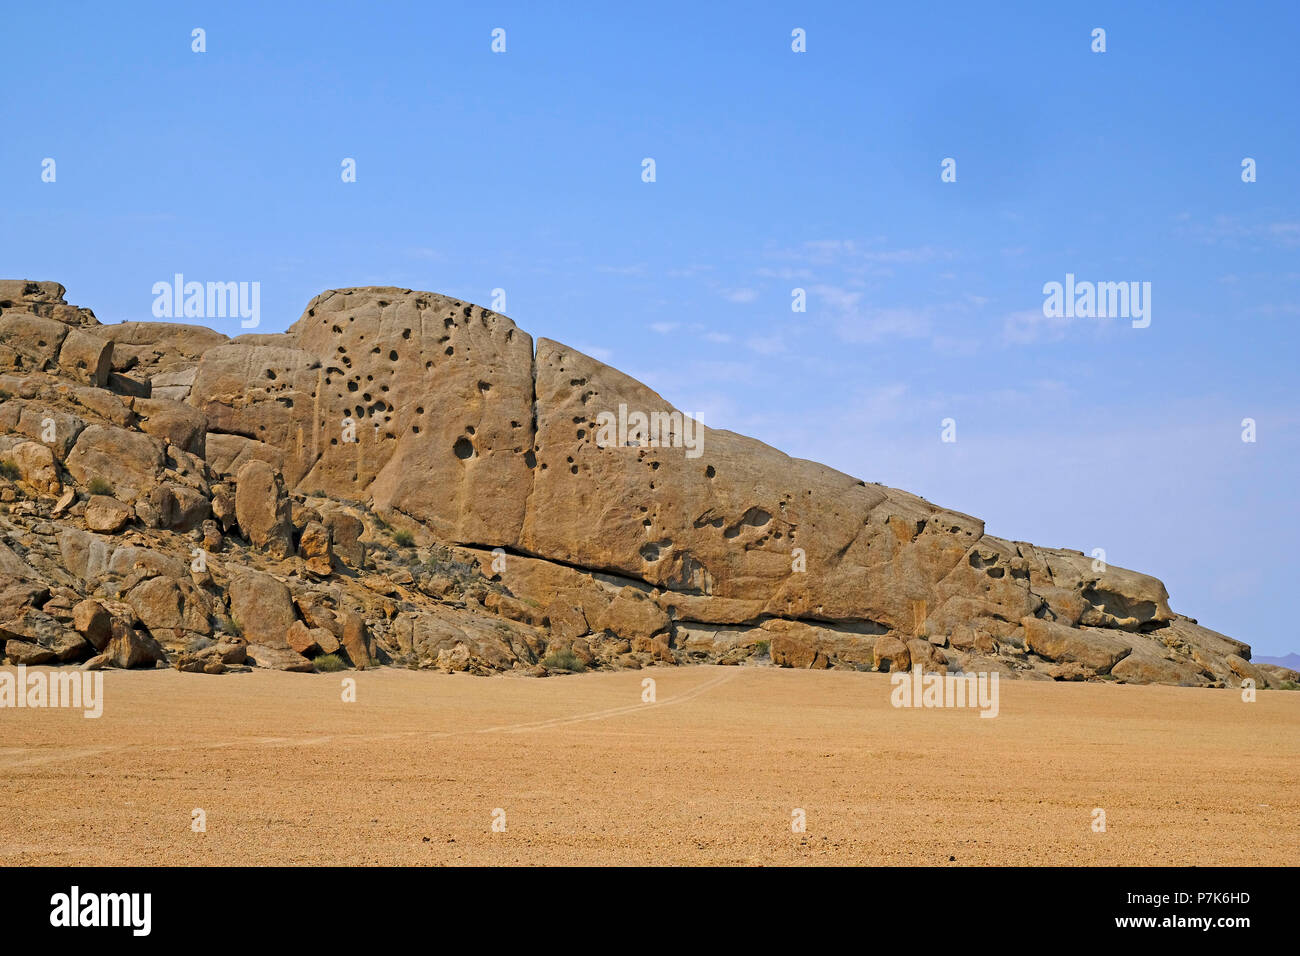 Monolith granite rocks with deep holes and crevices in the flanks in a side valley of the dry river Khumib at Skeleton Coast Park in Namibia, Kaokoland Stock Photo